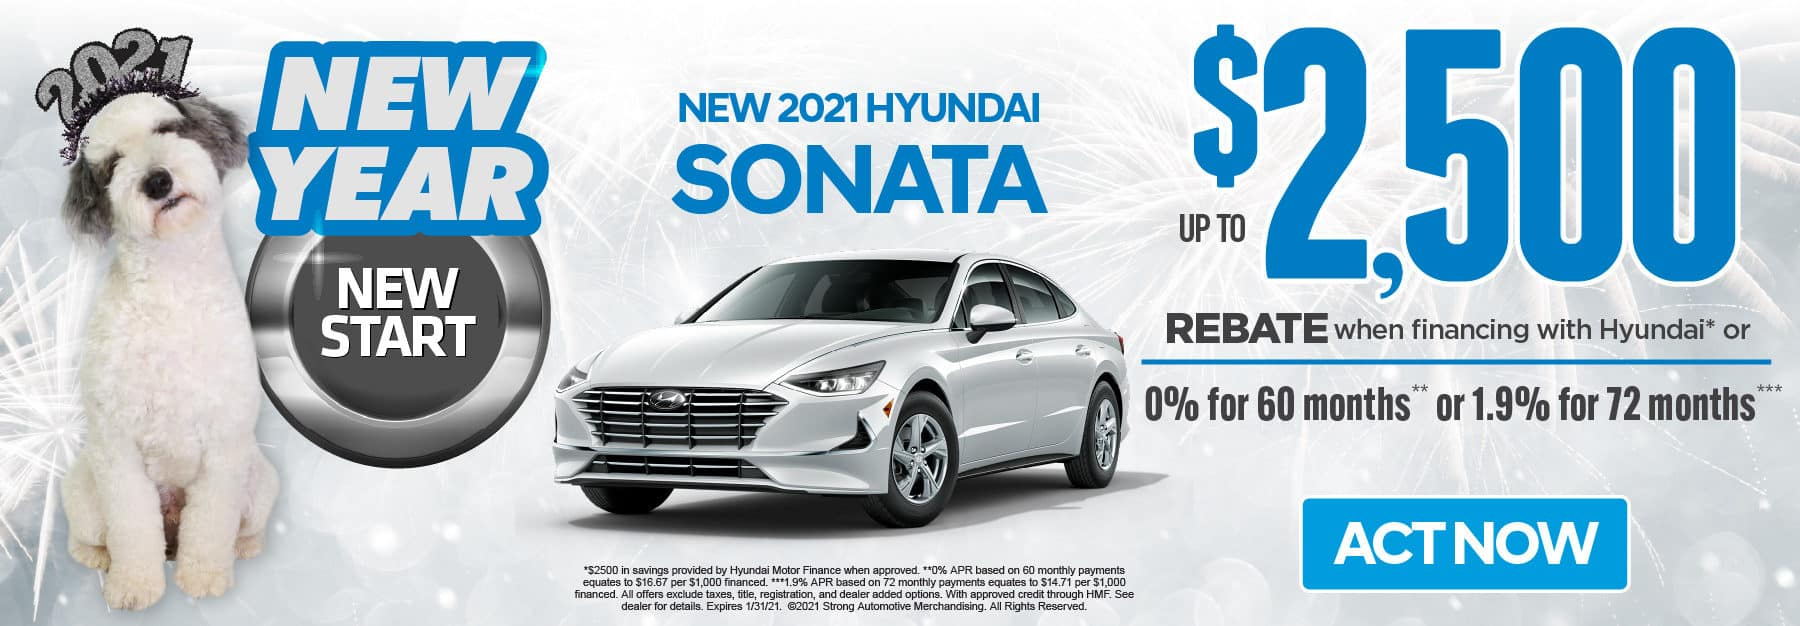 2021 Sonata up to $2,500 rebate - click here to view inventory